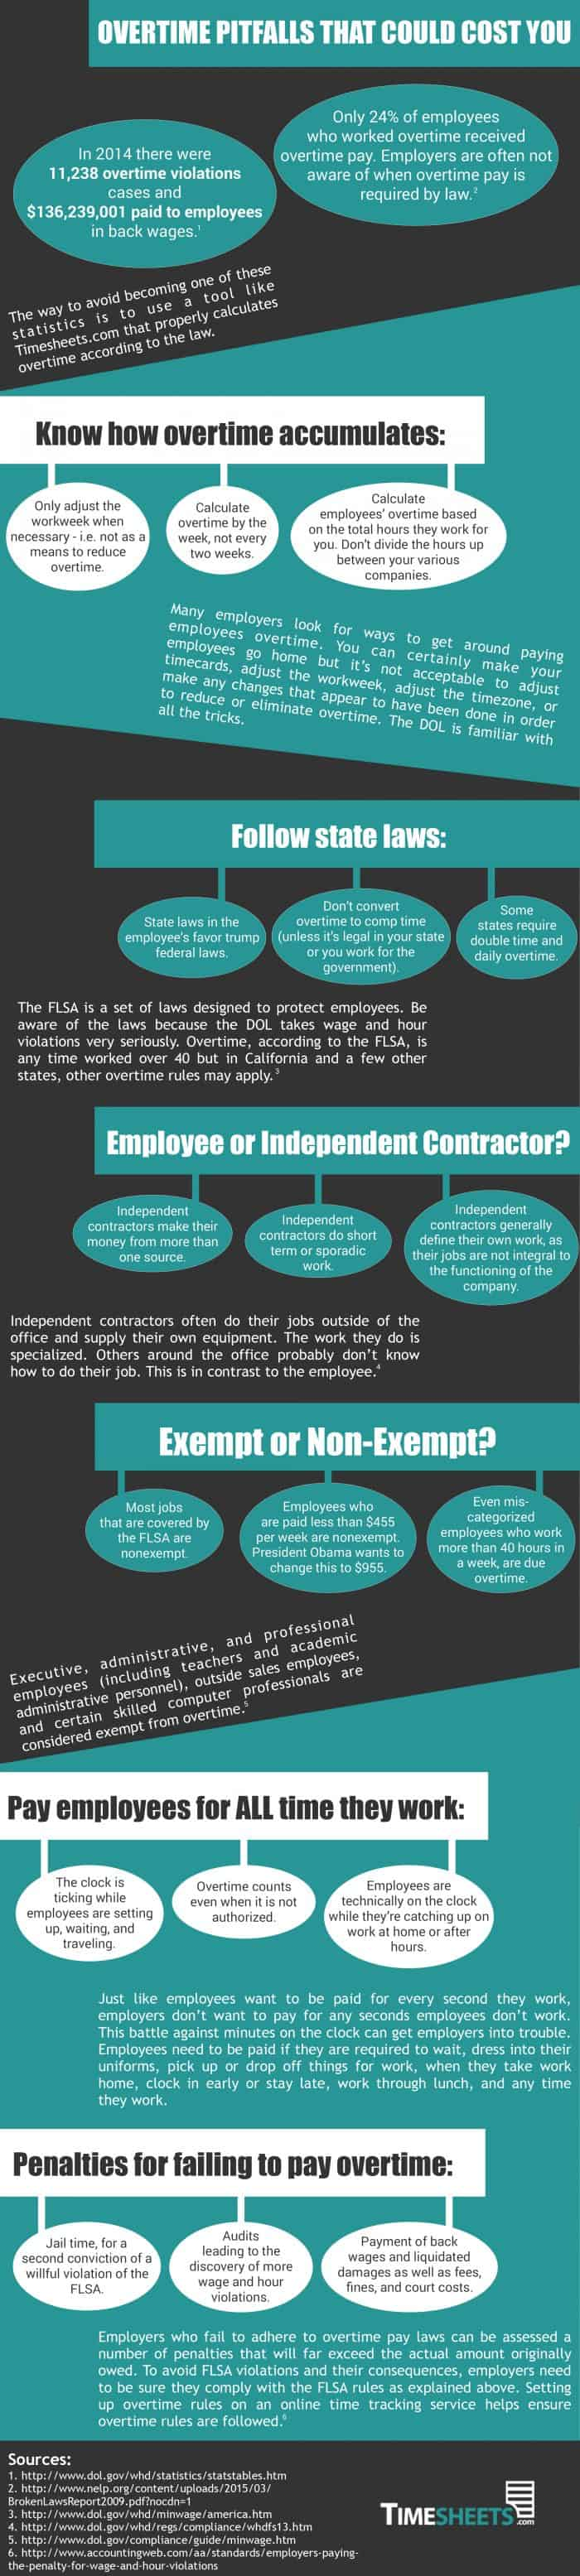 Overtime Pitfalls That Could Cost You Infographic